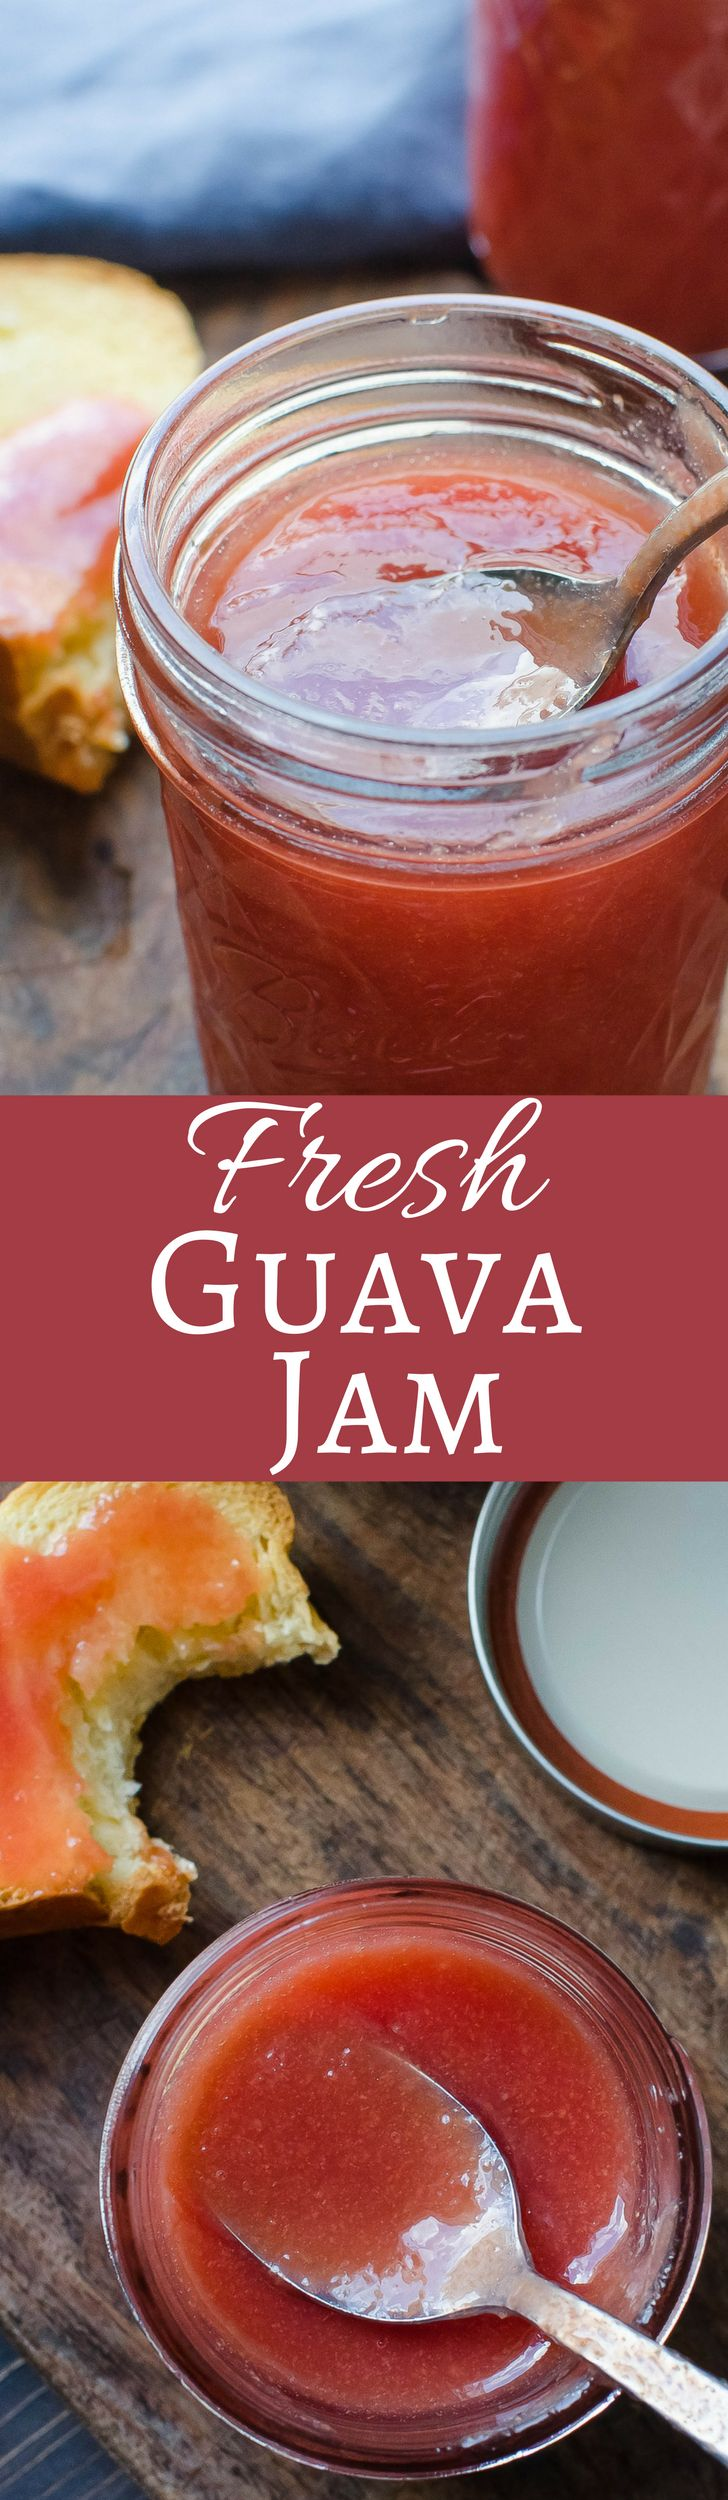 Fresh Guava Jam | Garlic & Zest